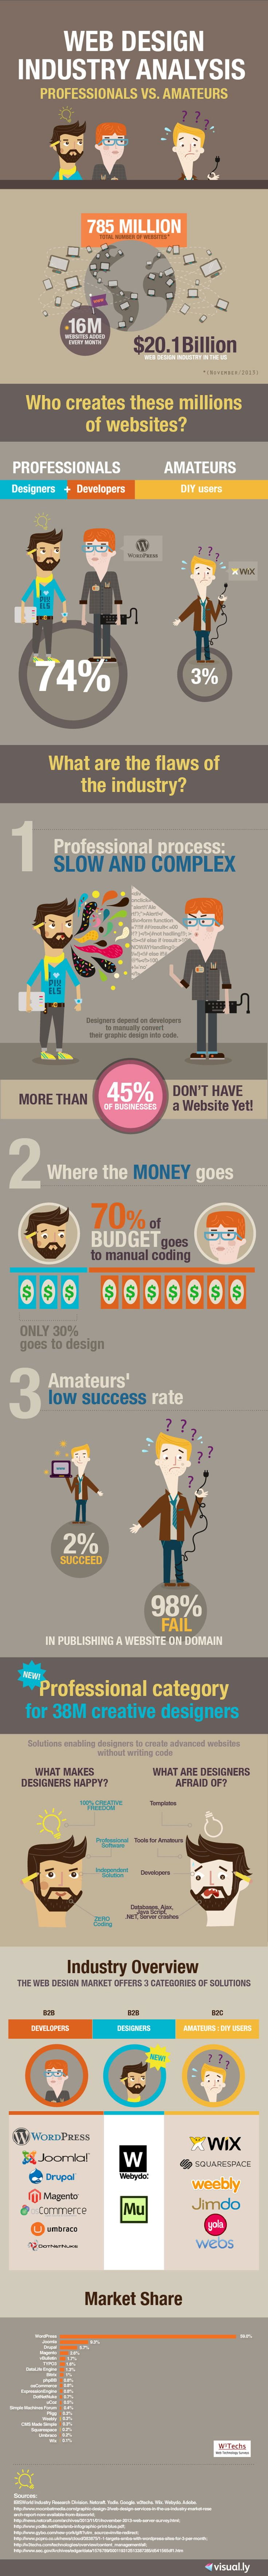 Infographic: Professionals vs. amateurs